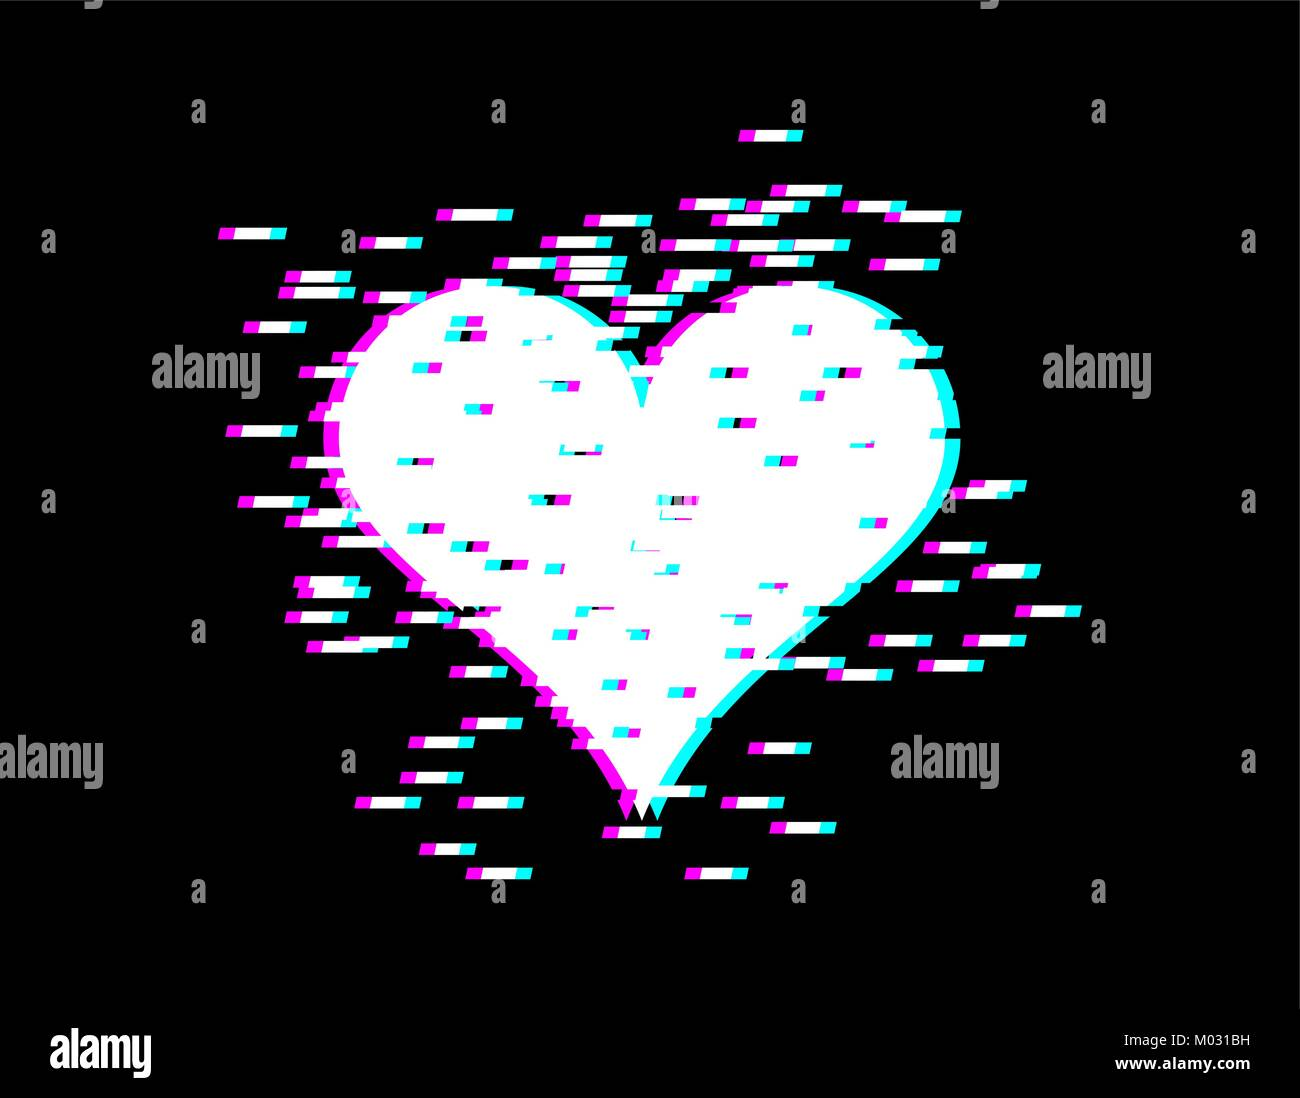 Love Heart Glitch Effect For Valentines Day Lovers Day Emblem For